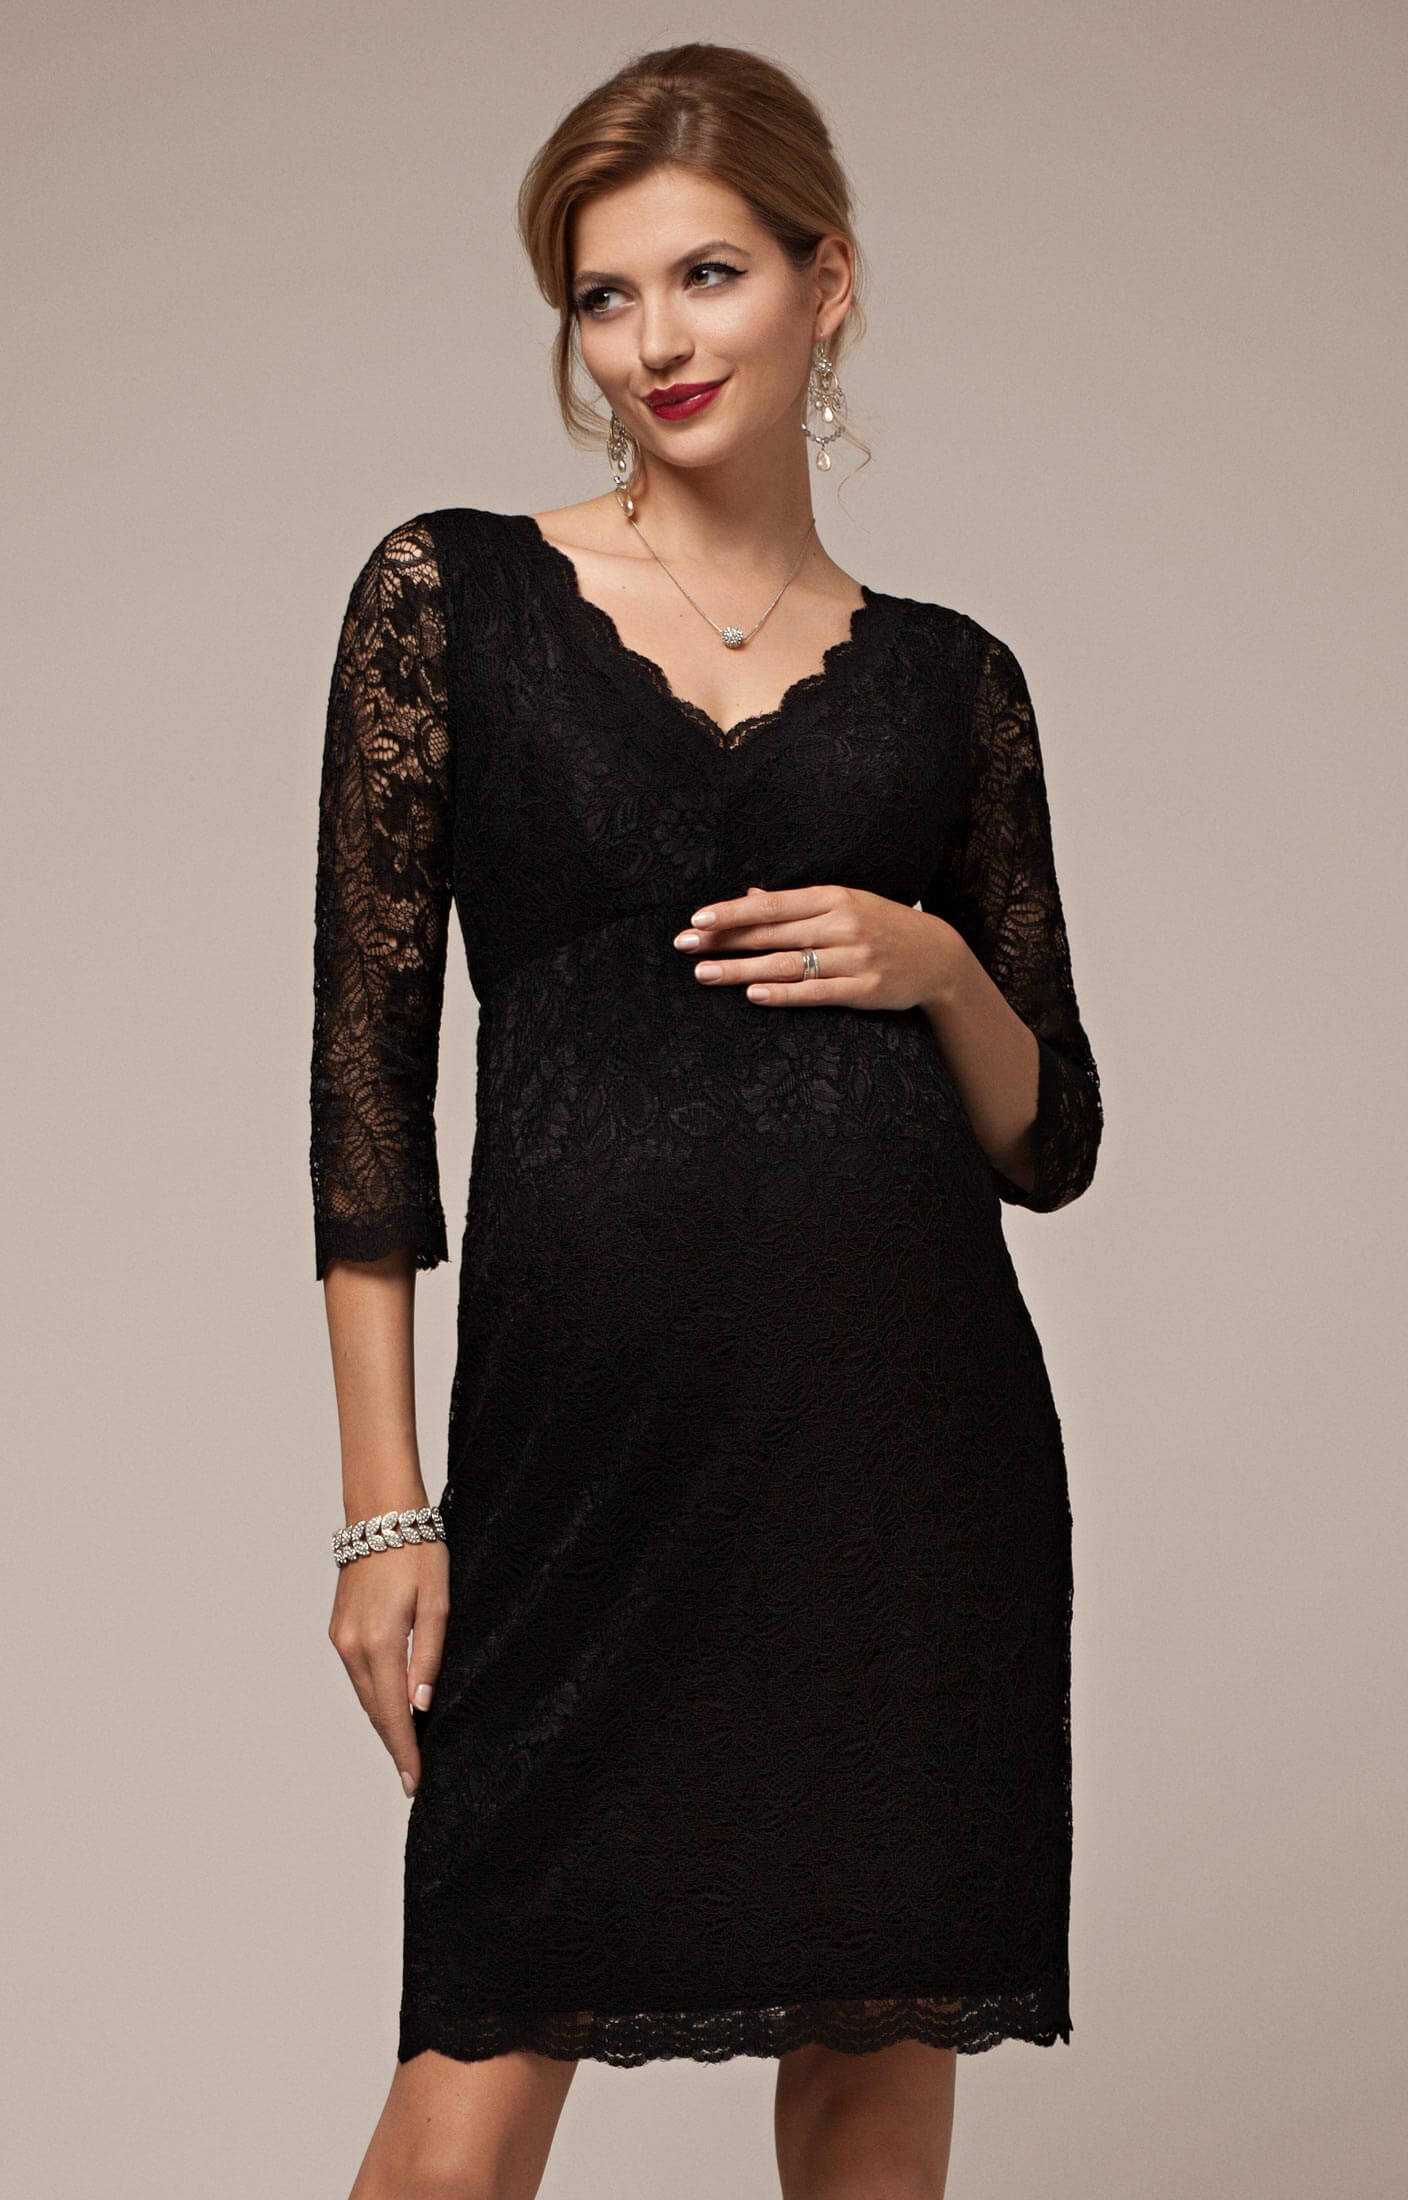 Chloe Lace Maternity Dress Black Maternity Wedding